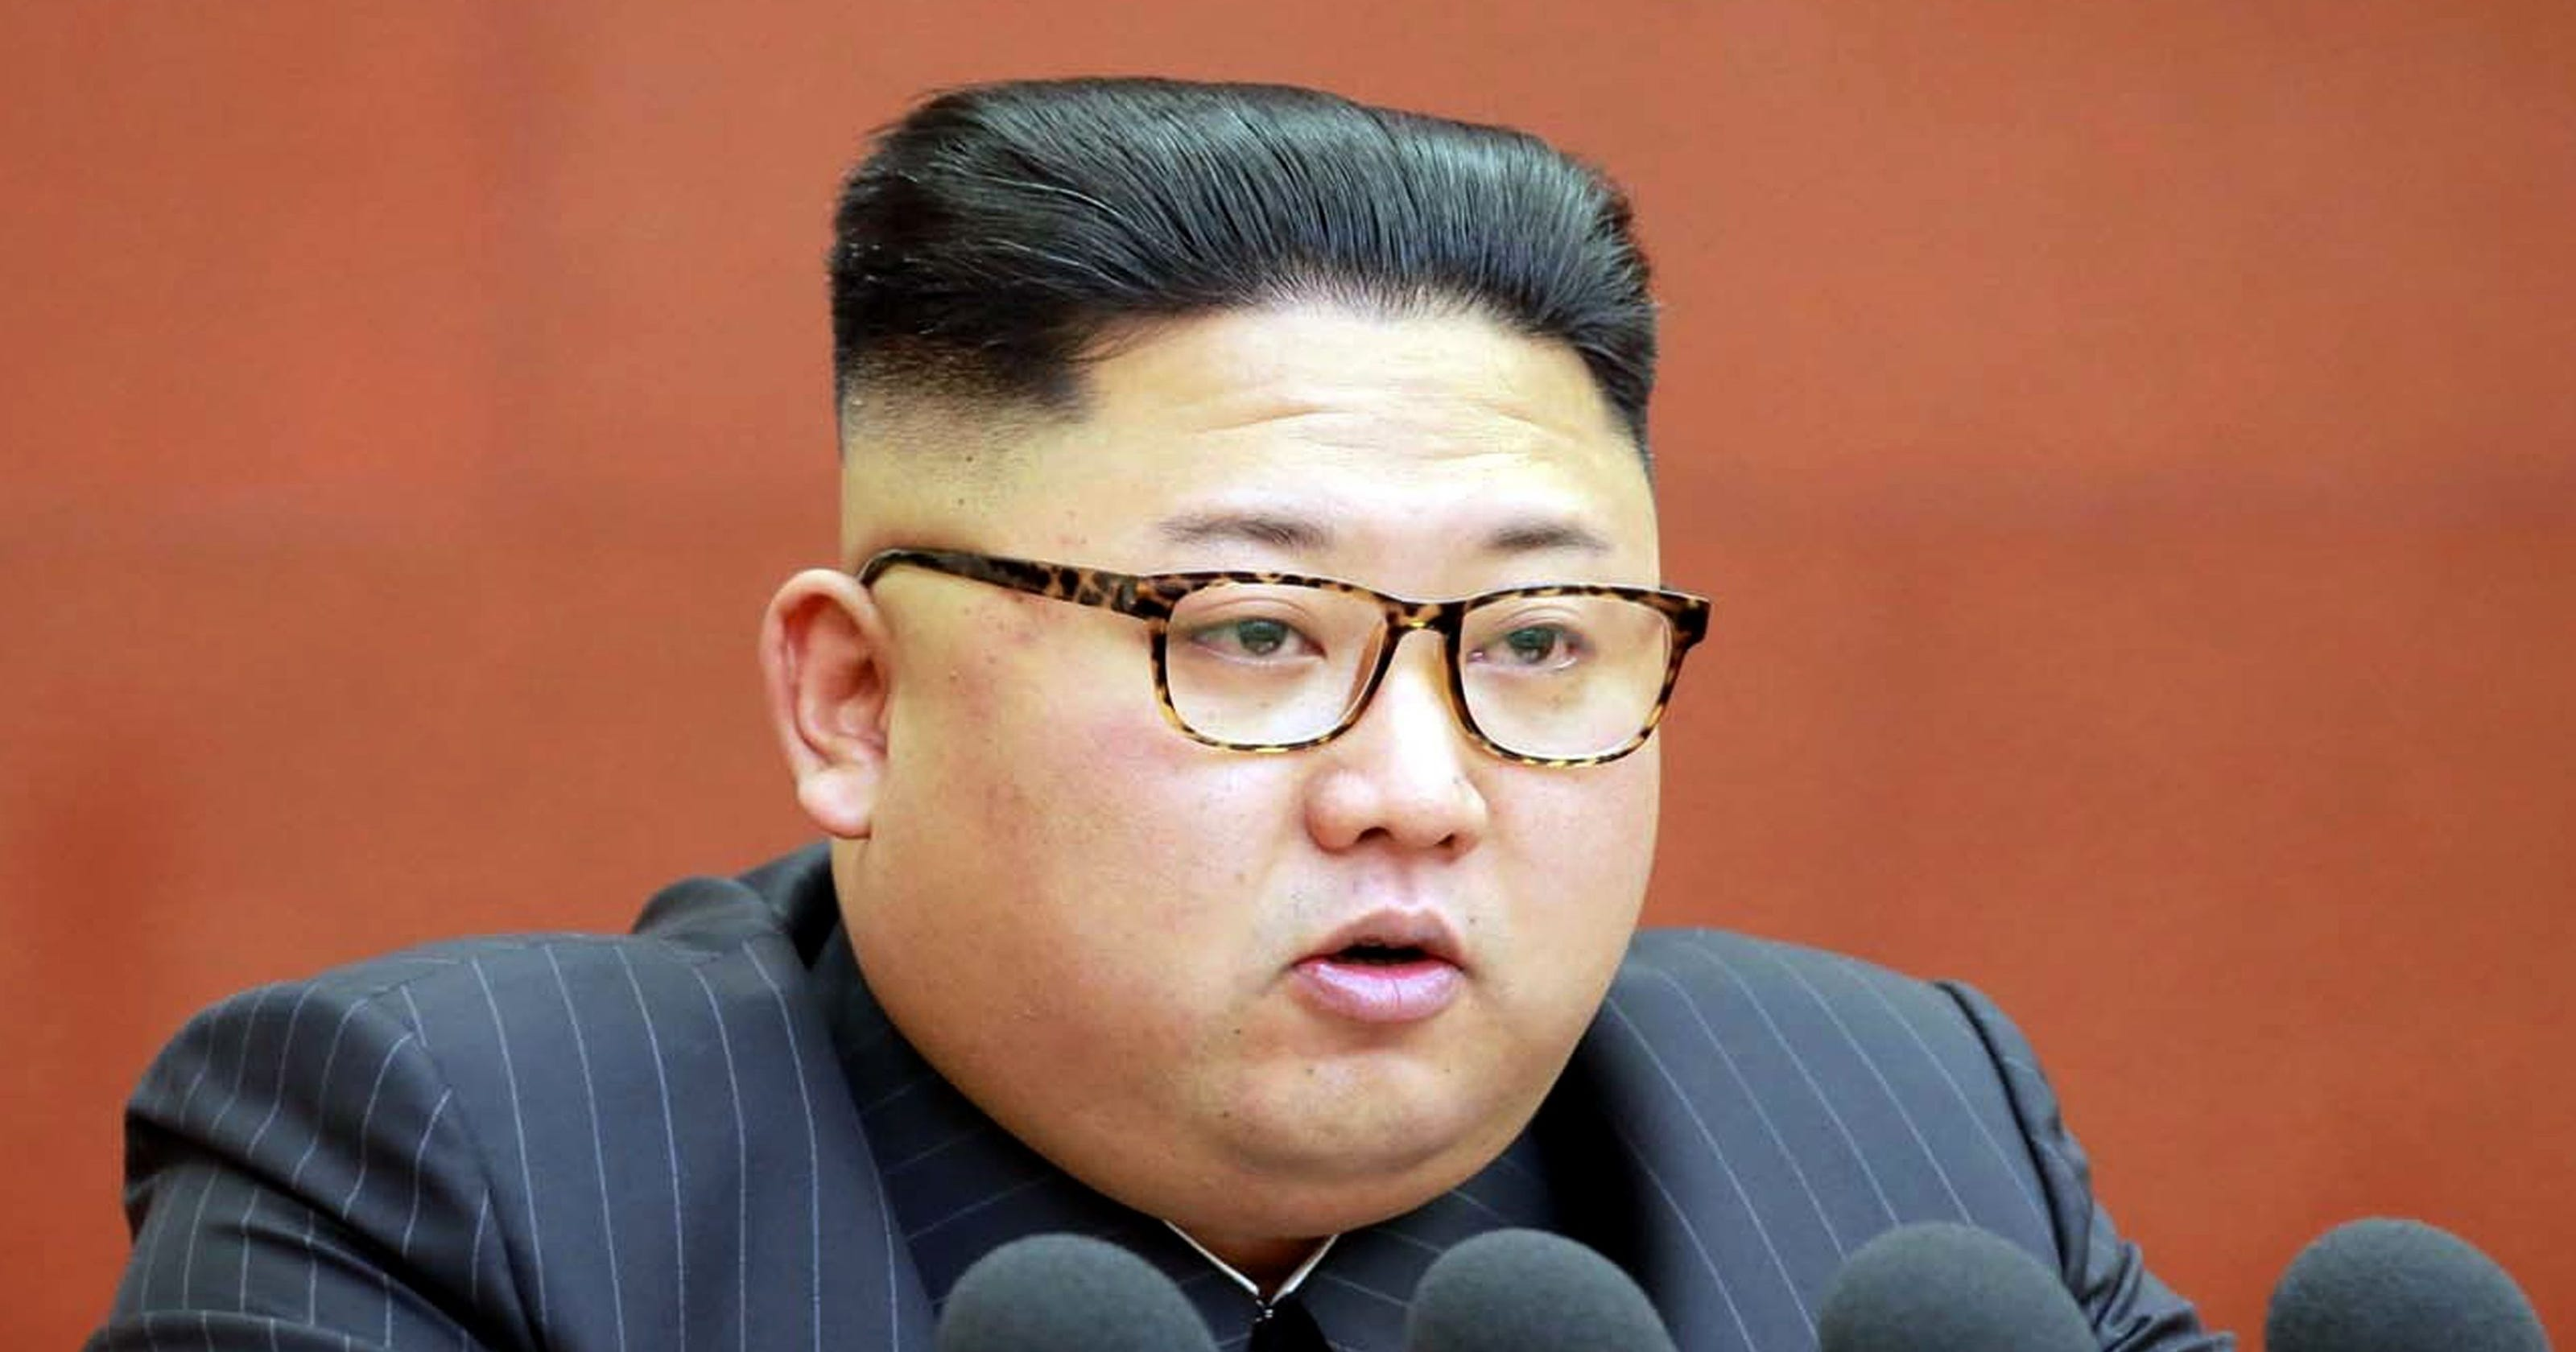 North Korea President Trumps Veiled Threats Could Lead To